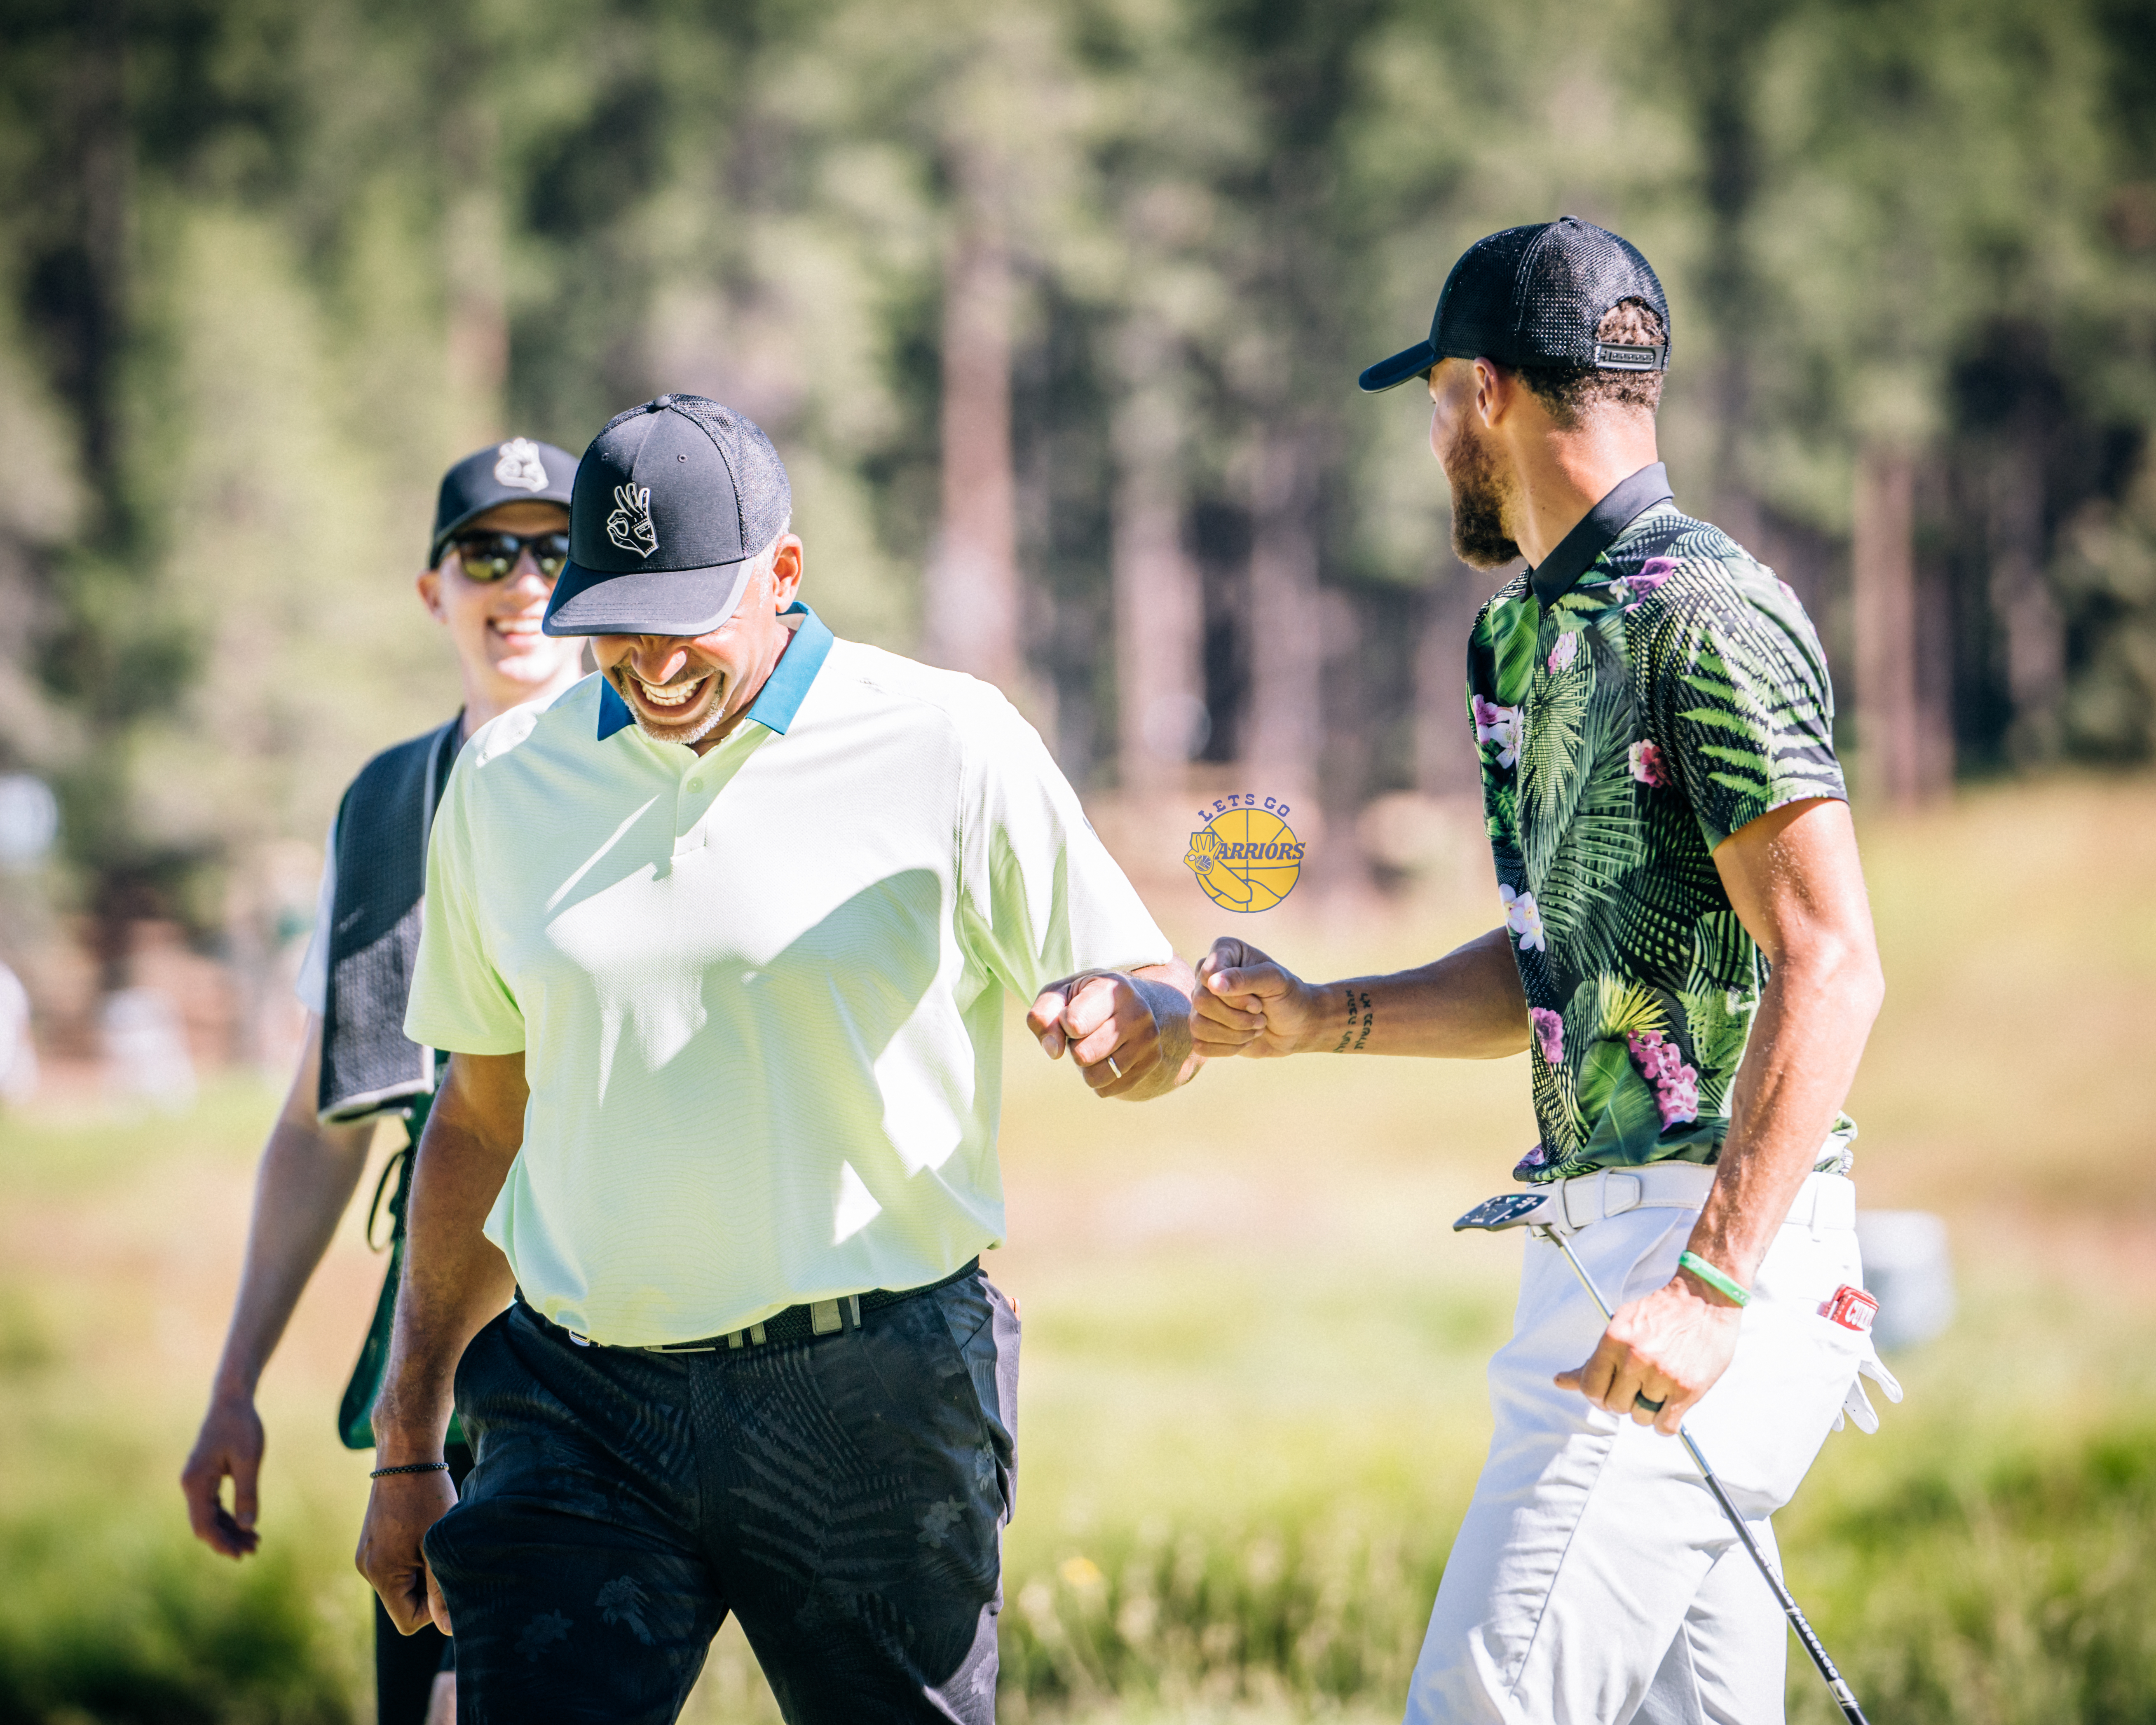 [PHOTO GALLERY] Steph & Dell Curry x Ray Allen at Edgewood Tahoe American Century Championship - Round 3